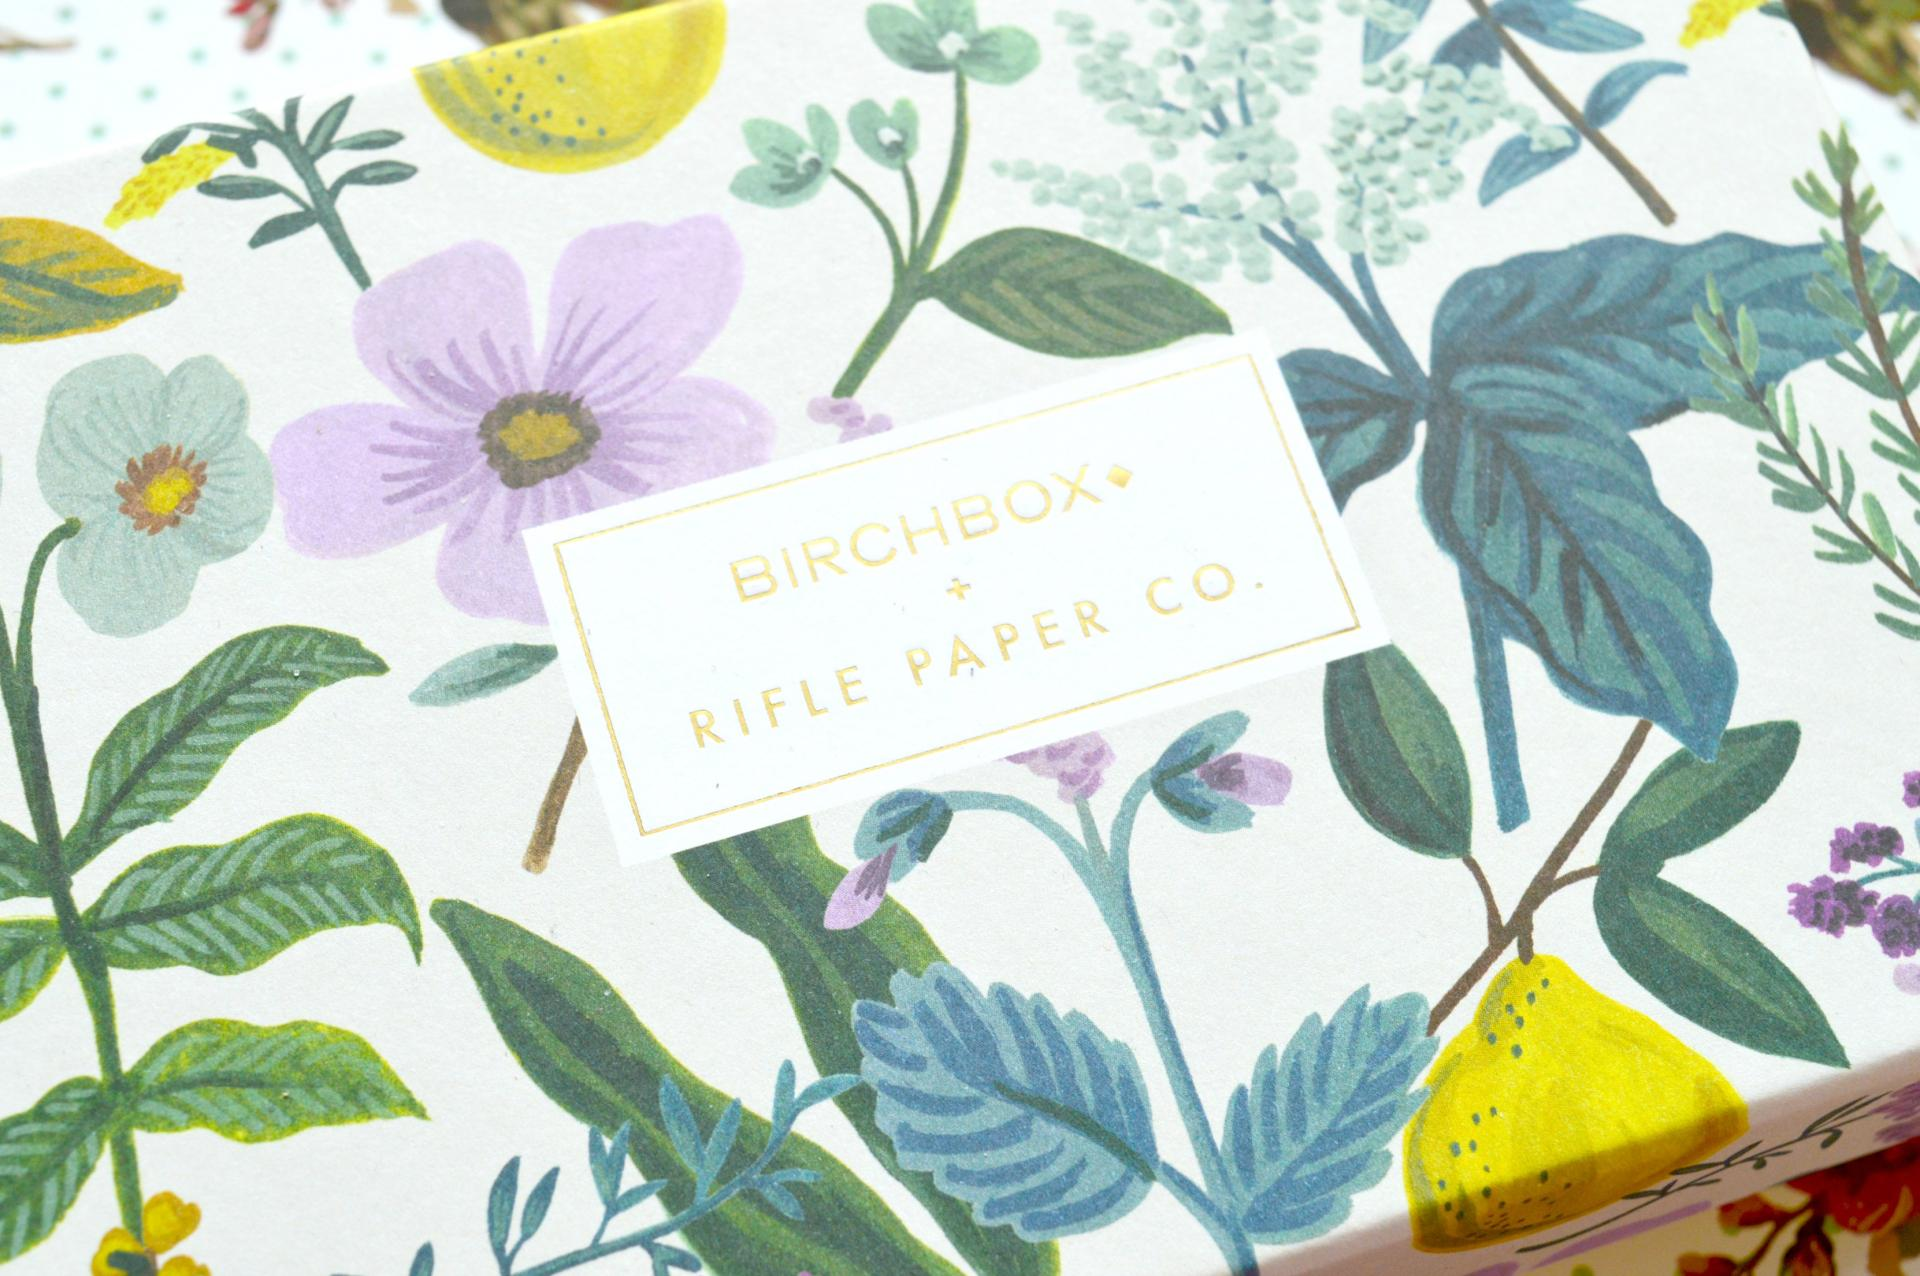 April 2016 Birchbox: Rifle Paper Co.